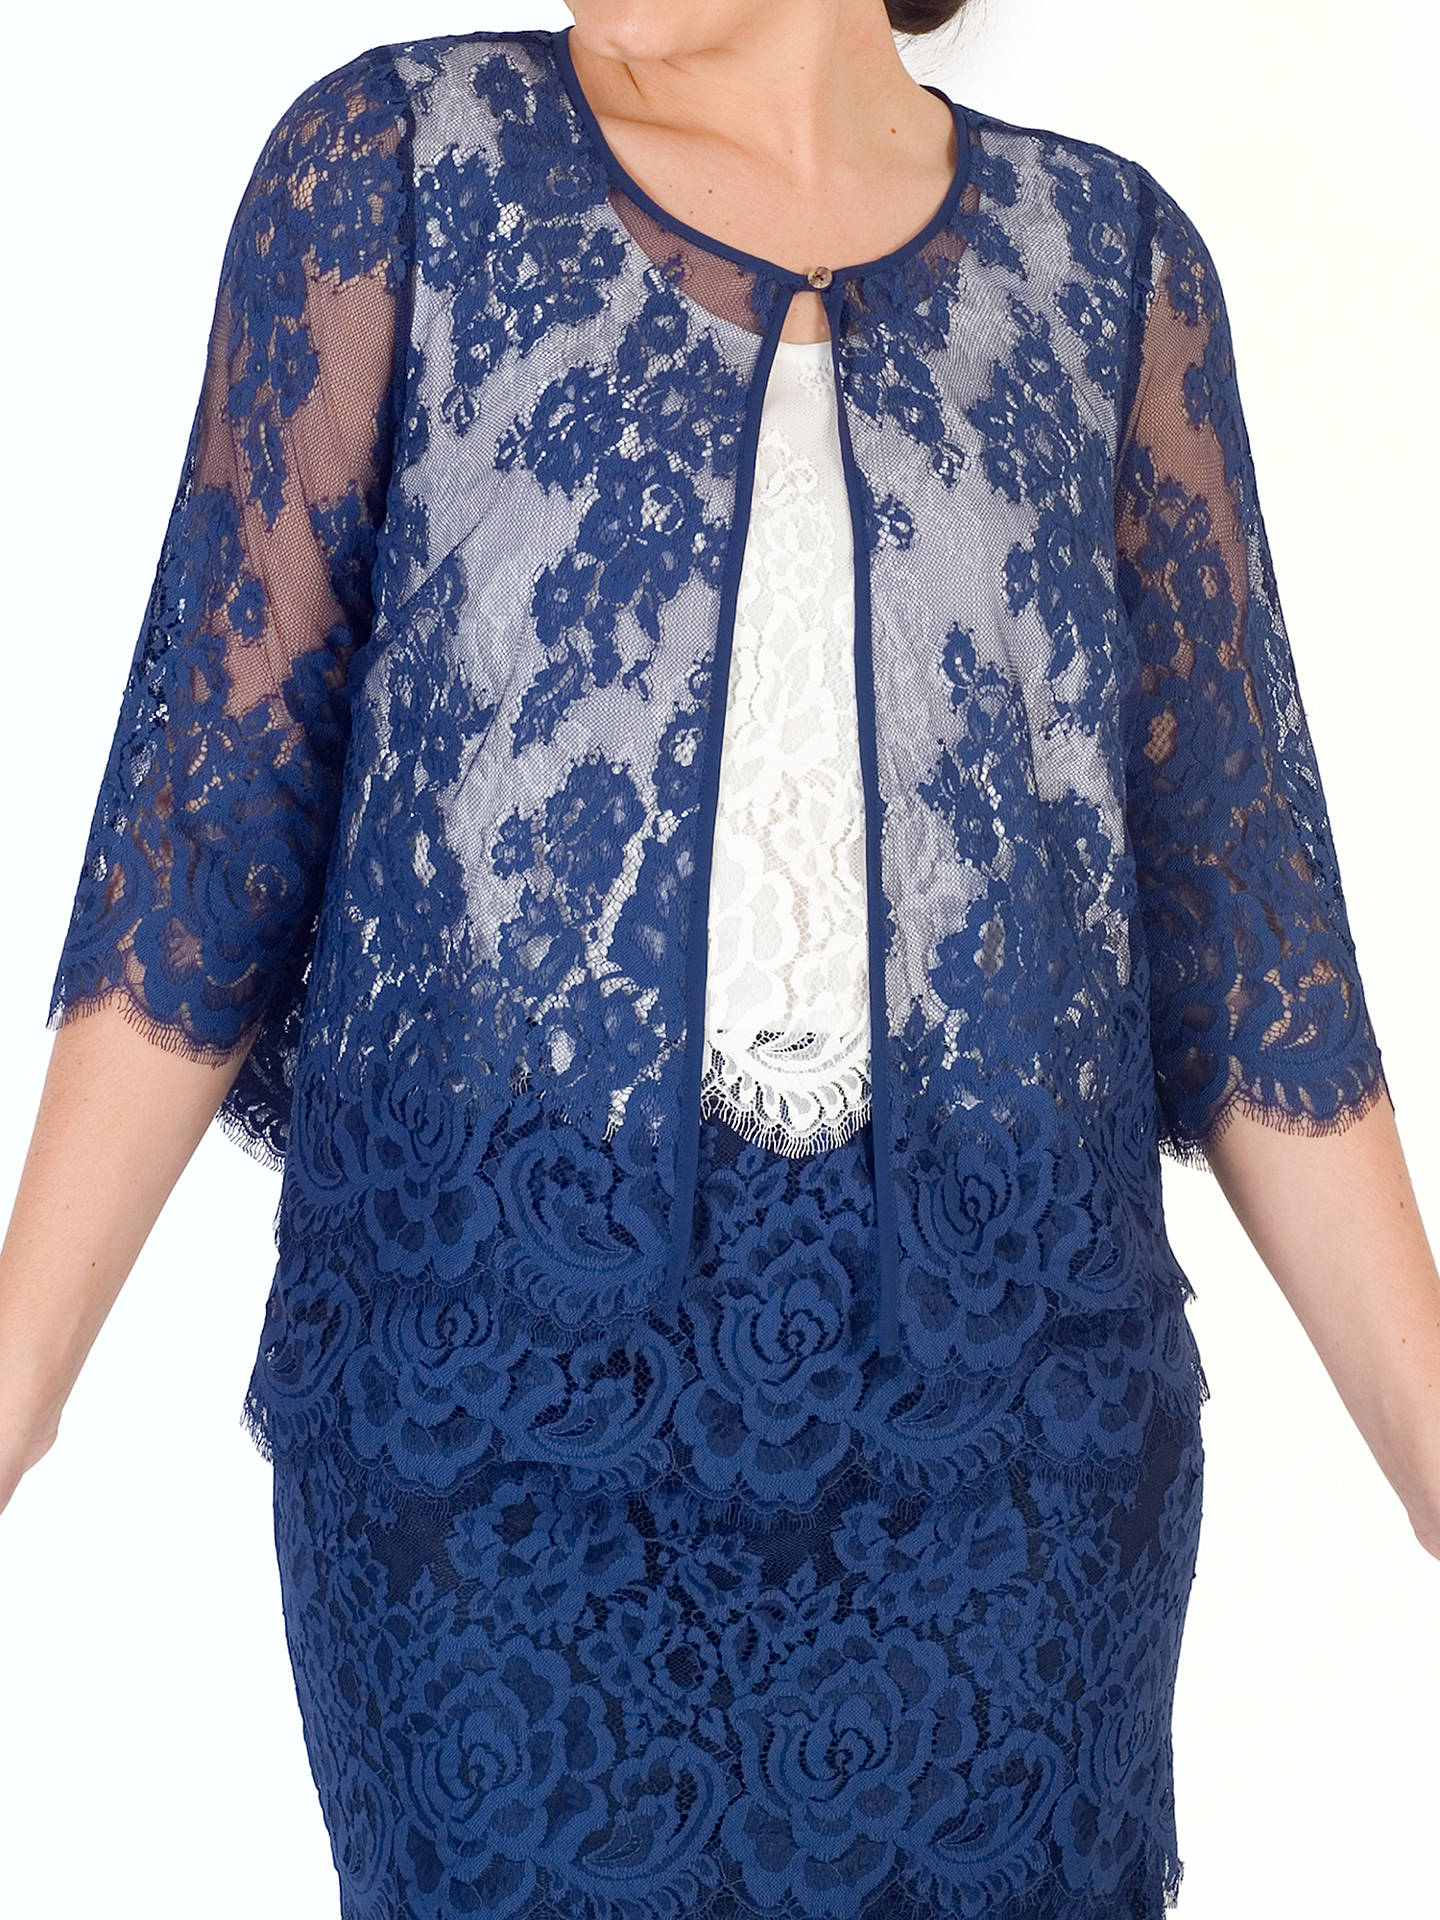 BuyChesca Eyelash Trim Lace Jacket, Riviera Blue, 12 Online at johnlewis.com